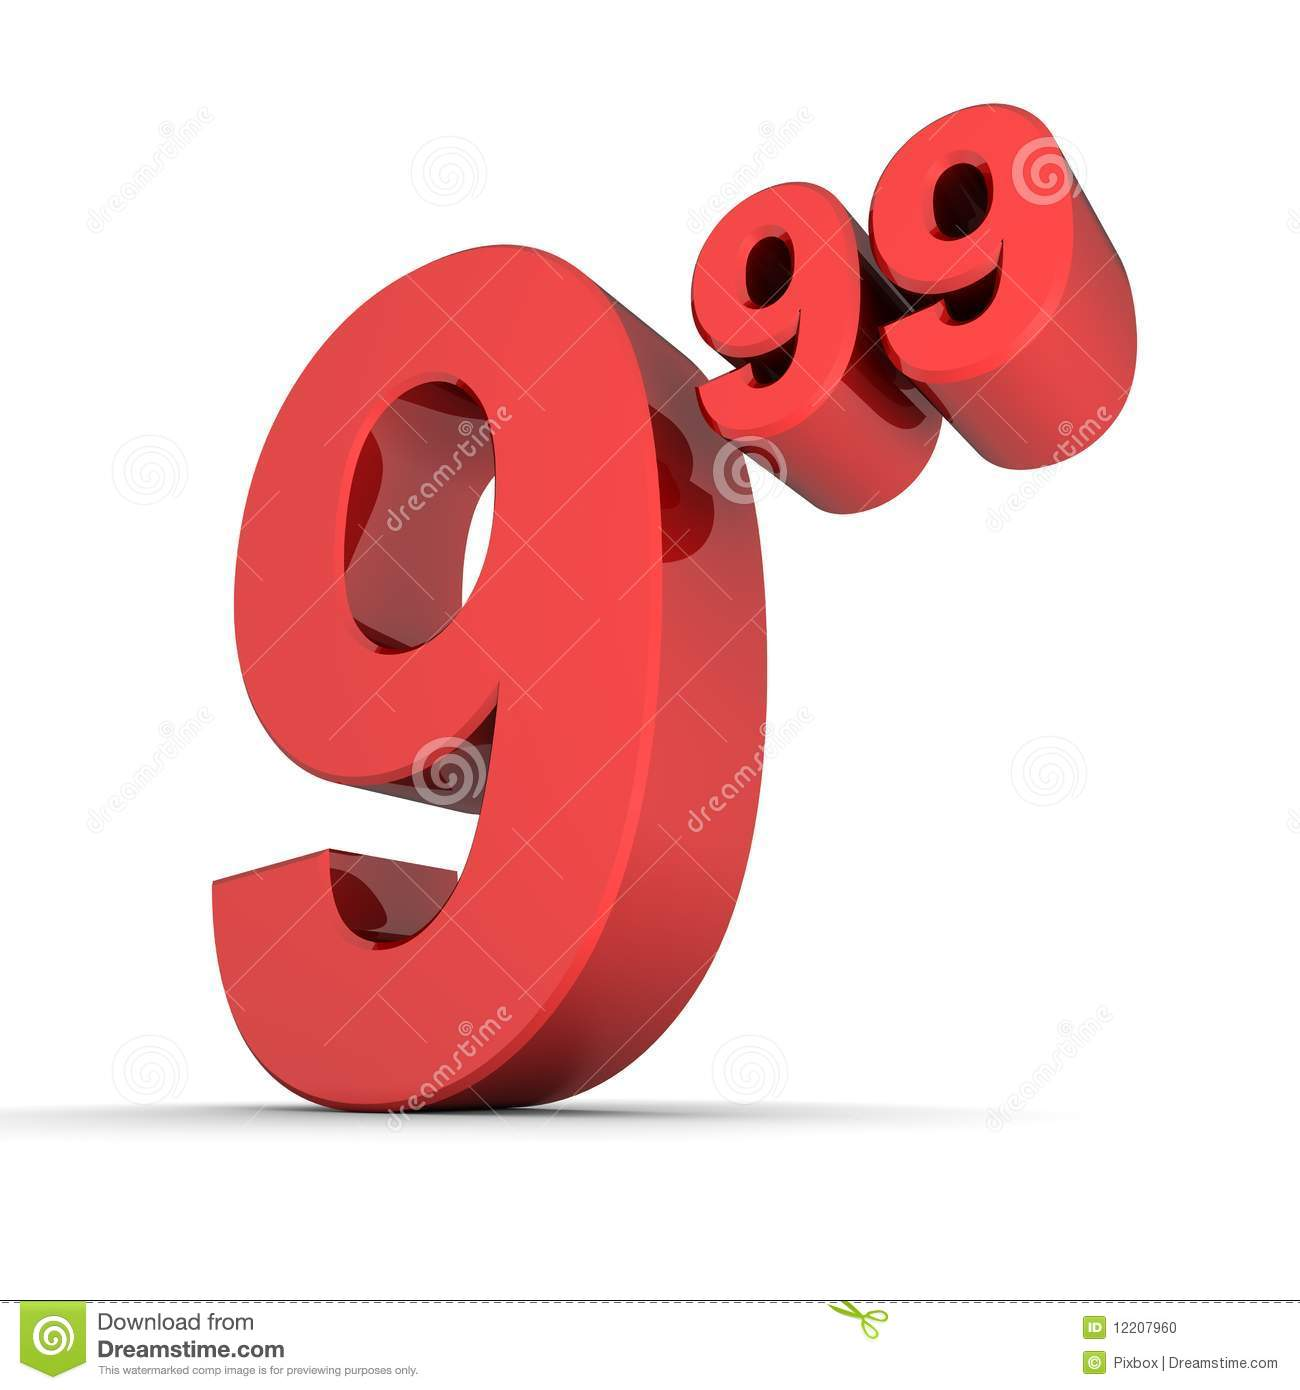 More similar stock images of ` Solid Price Tag Number 9.99 - Shiny Red ...